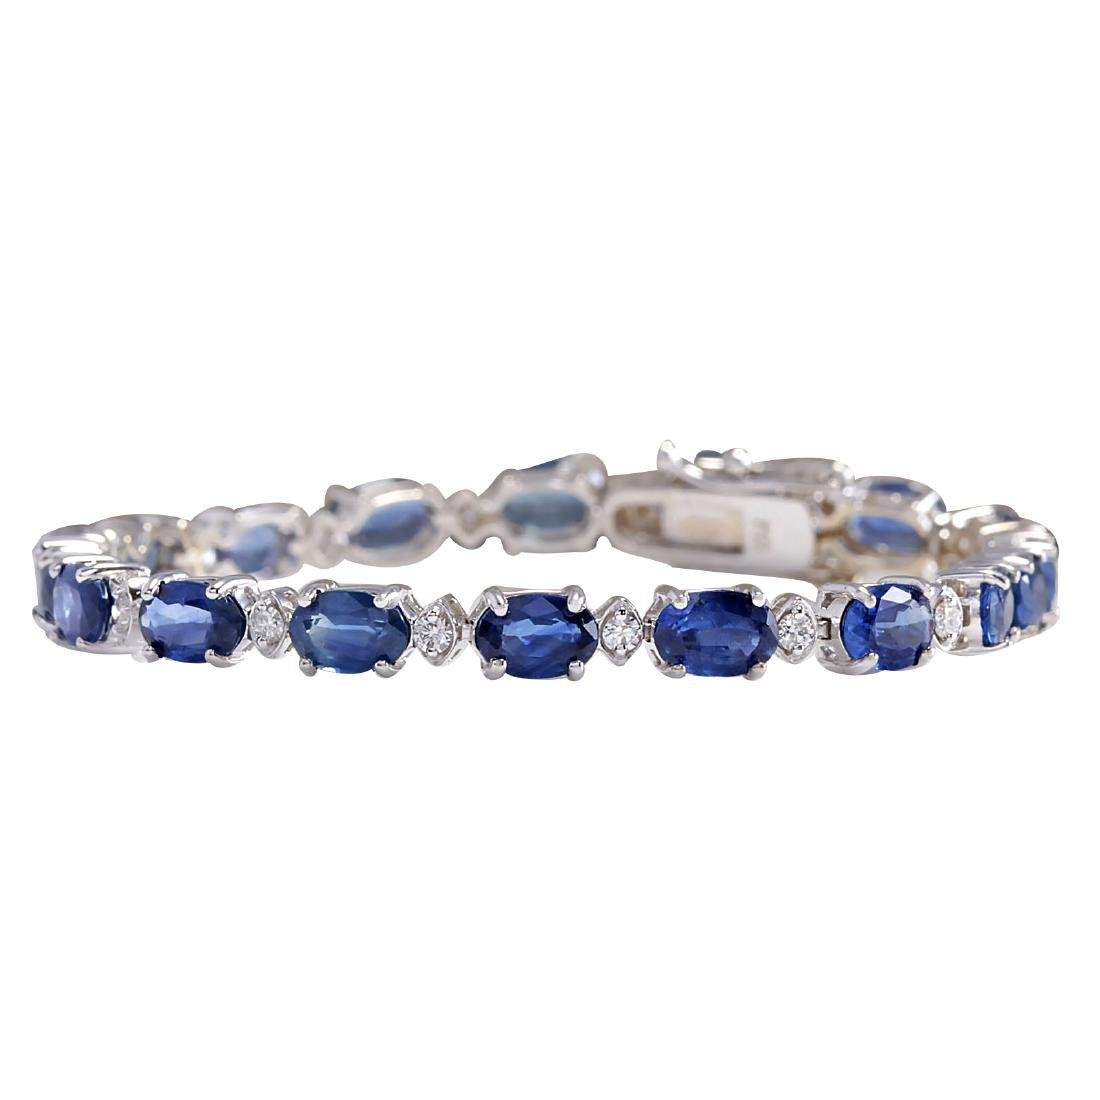 11.95CTW Natural Sapphire And Diamond Bracelet In 18K